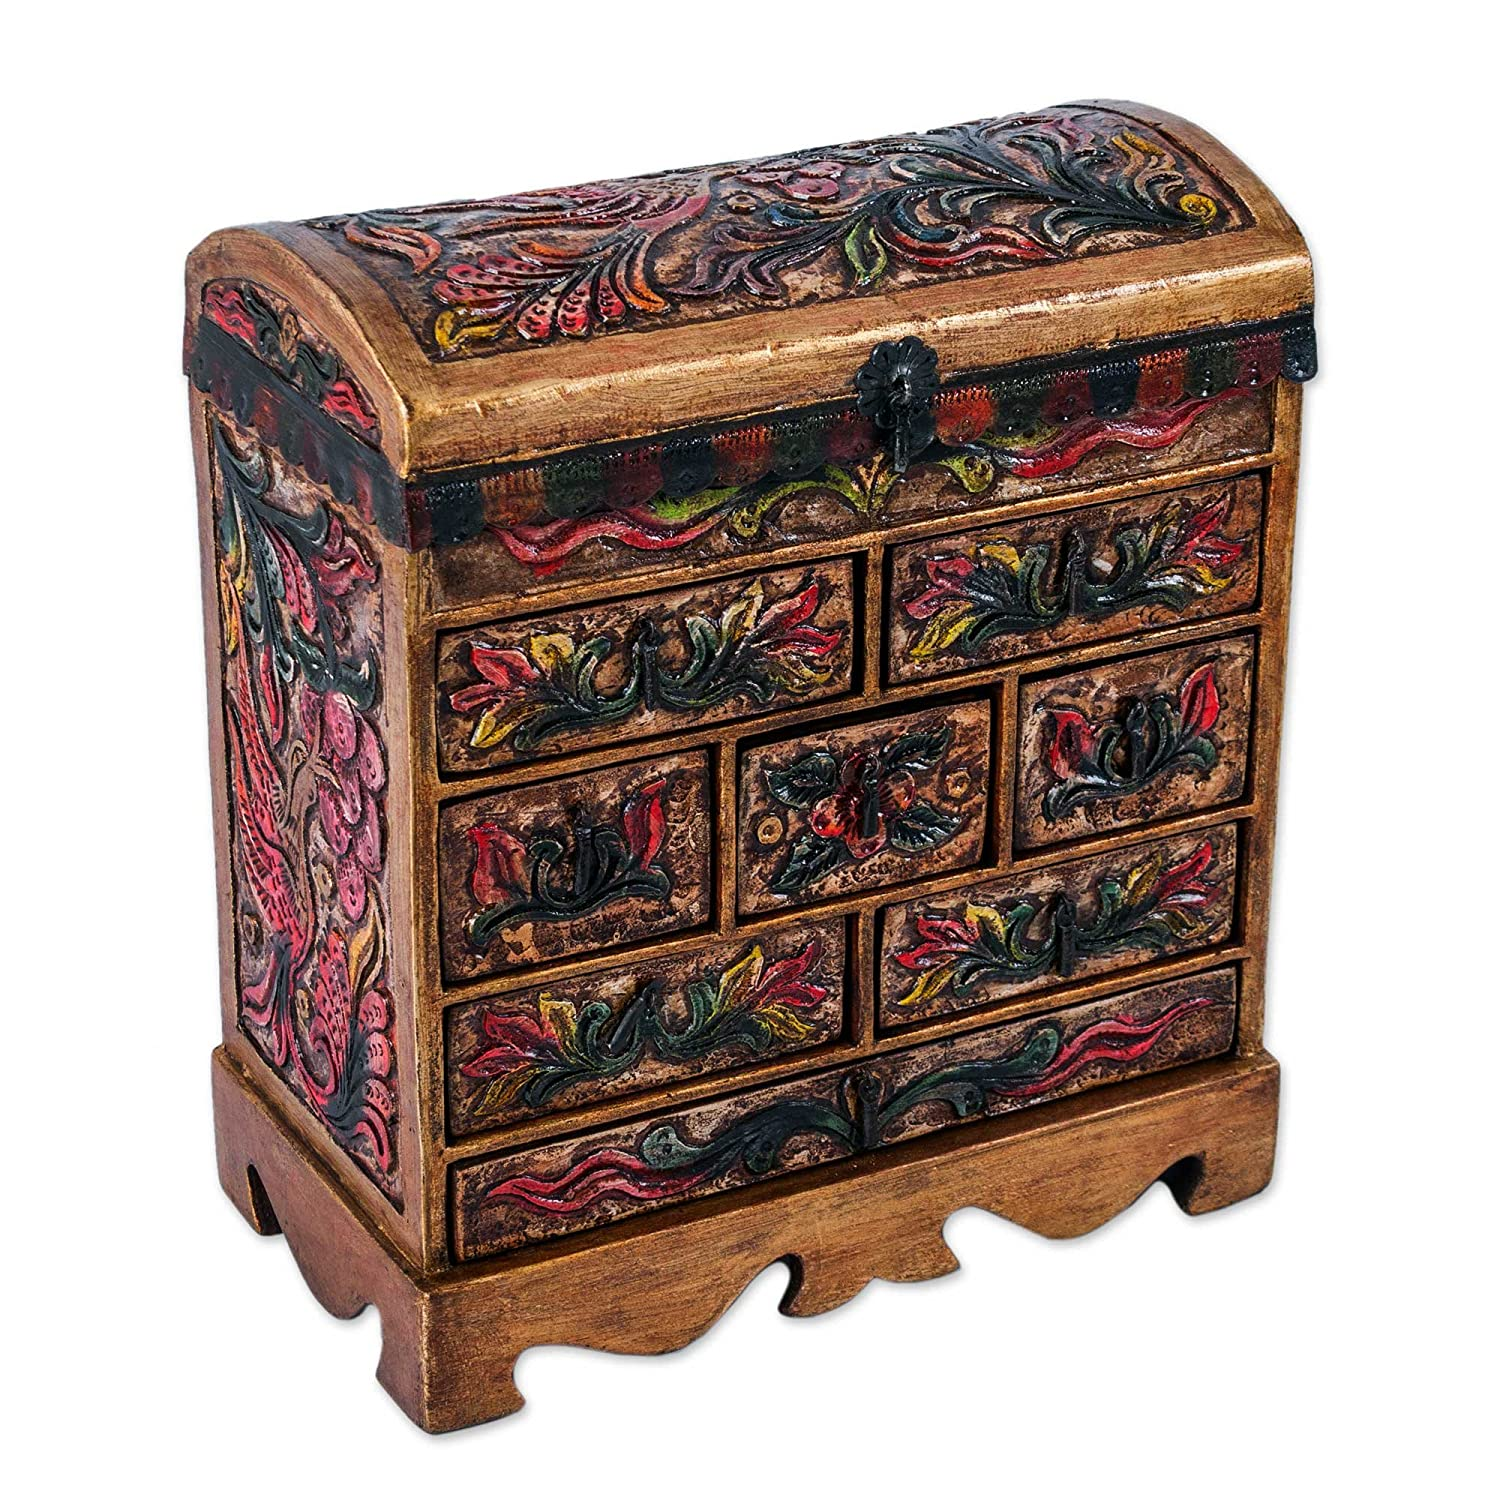 NOVICA JB0062 Exotic Birds Wood and Leather Jewelry Box